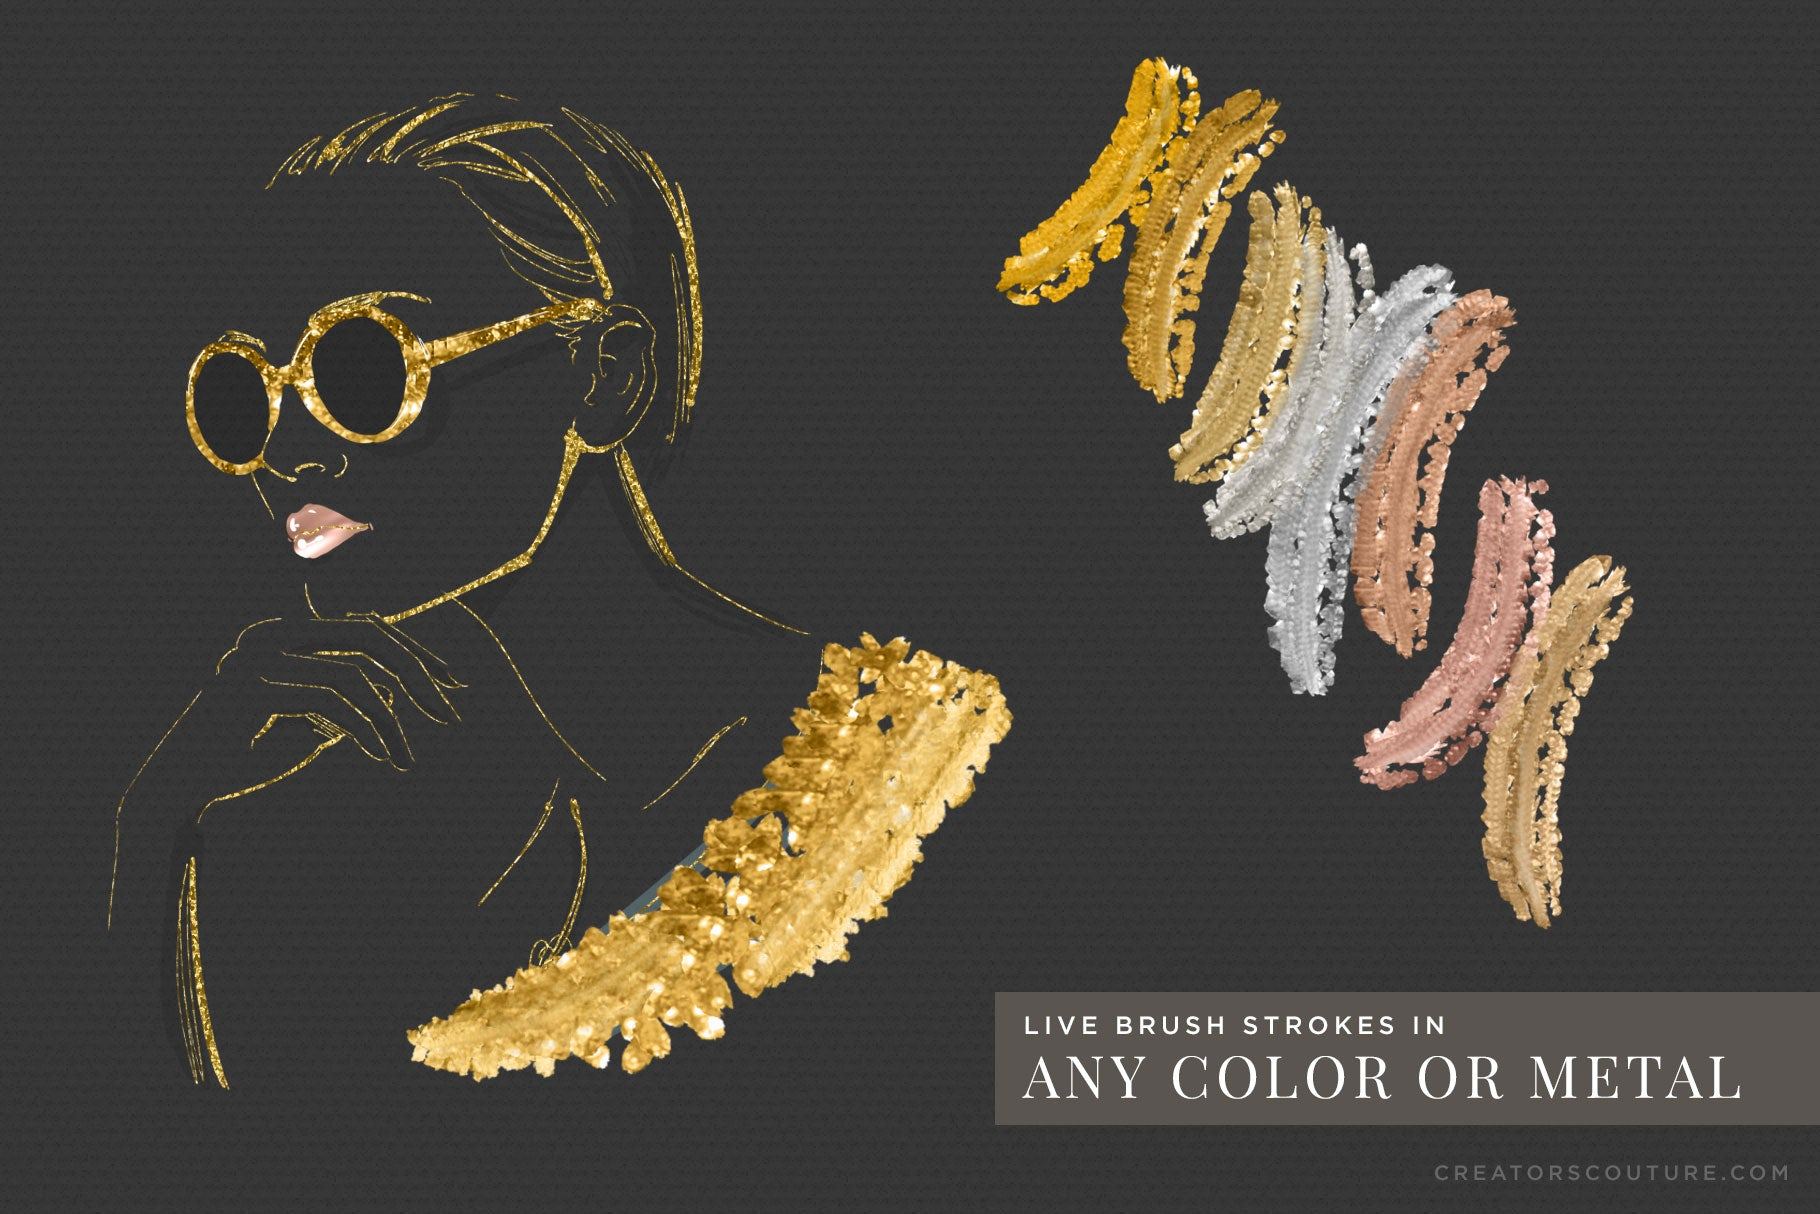 24K Gold Photoshop Brush Magic: Metallic Gold Brush Strokes - Creators Couture